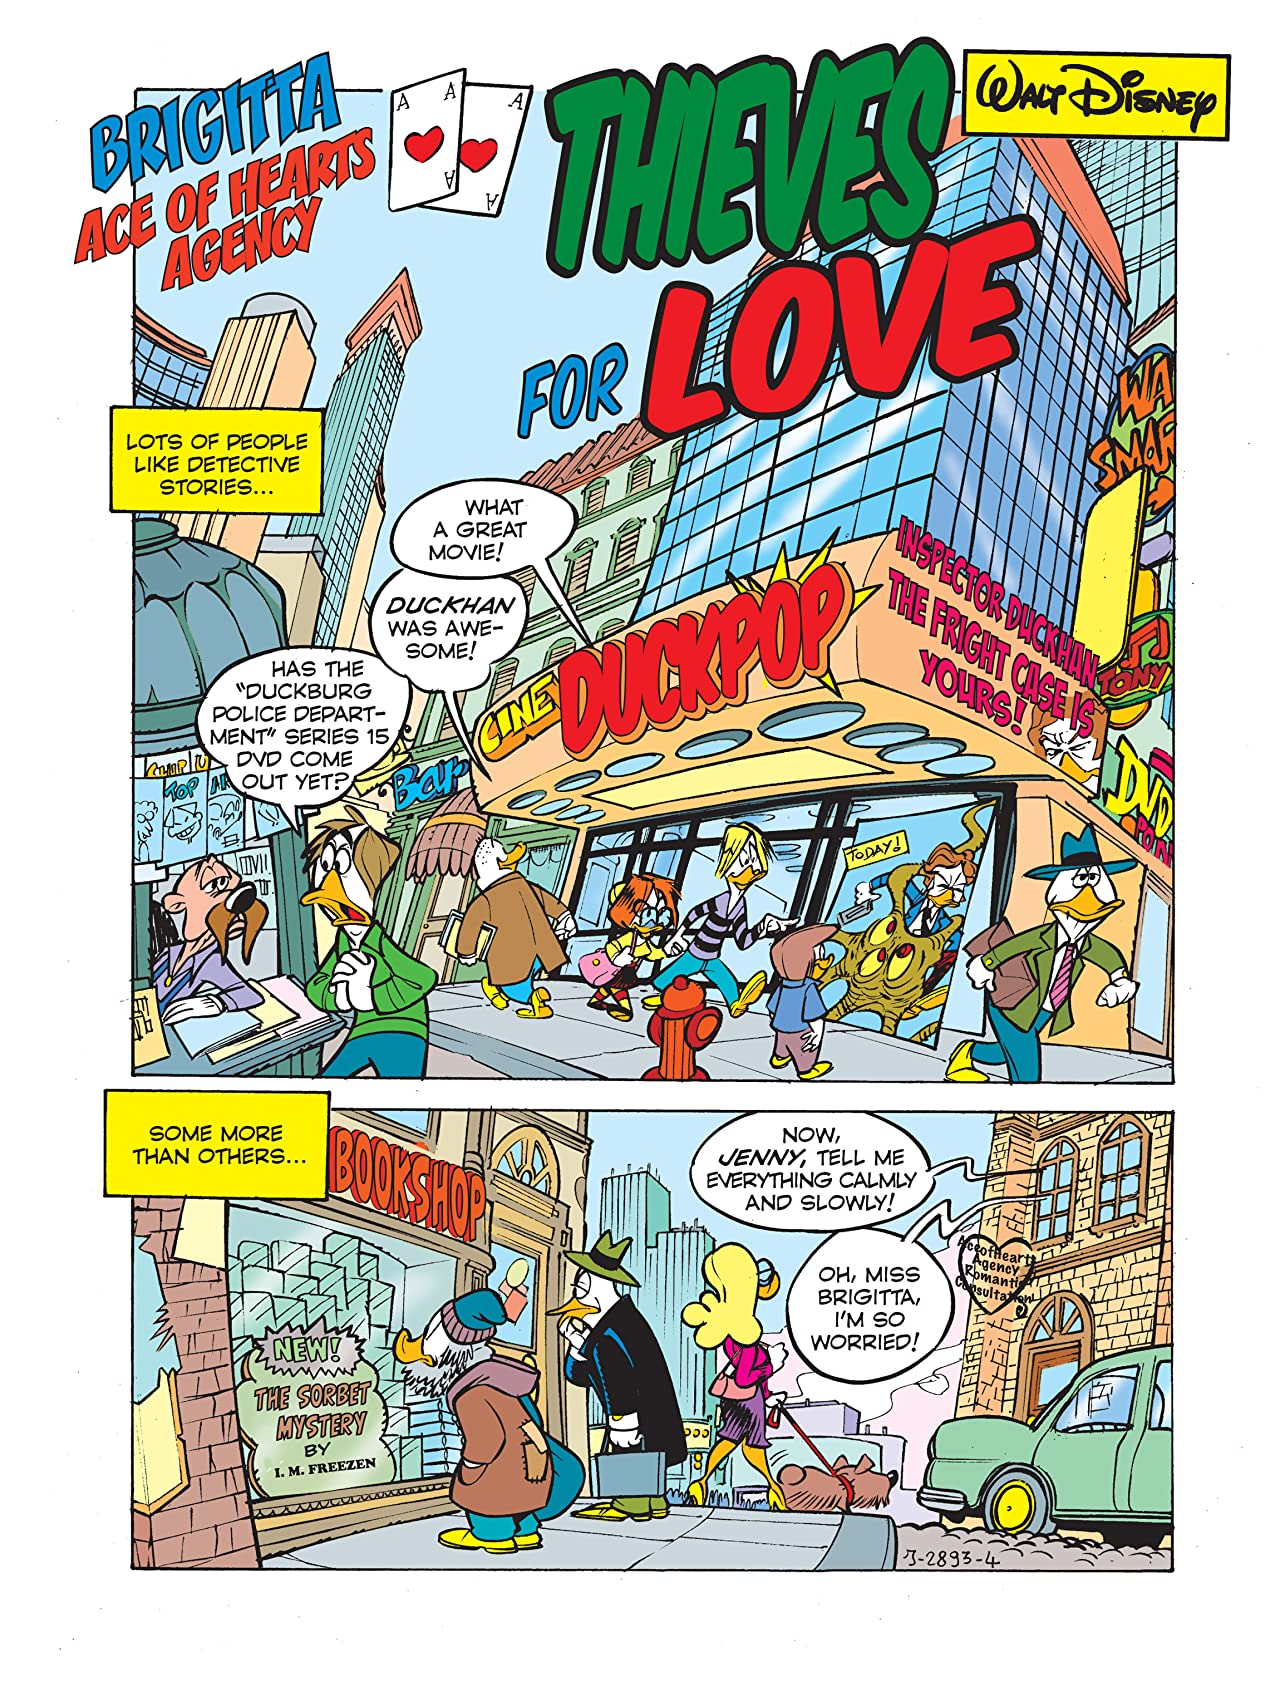 Scrooge McDuck in Thieves for Love